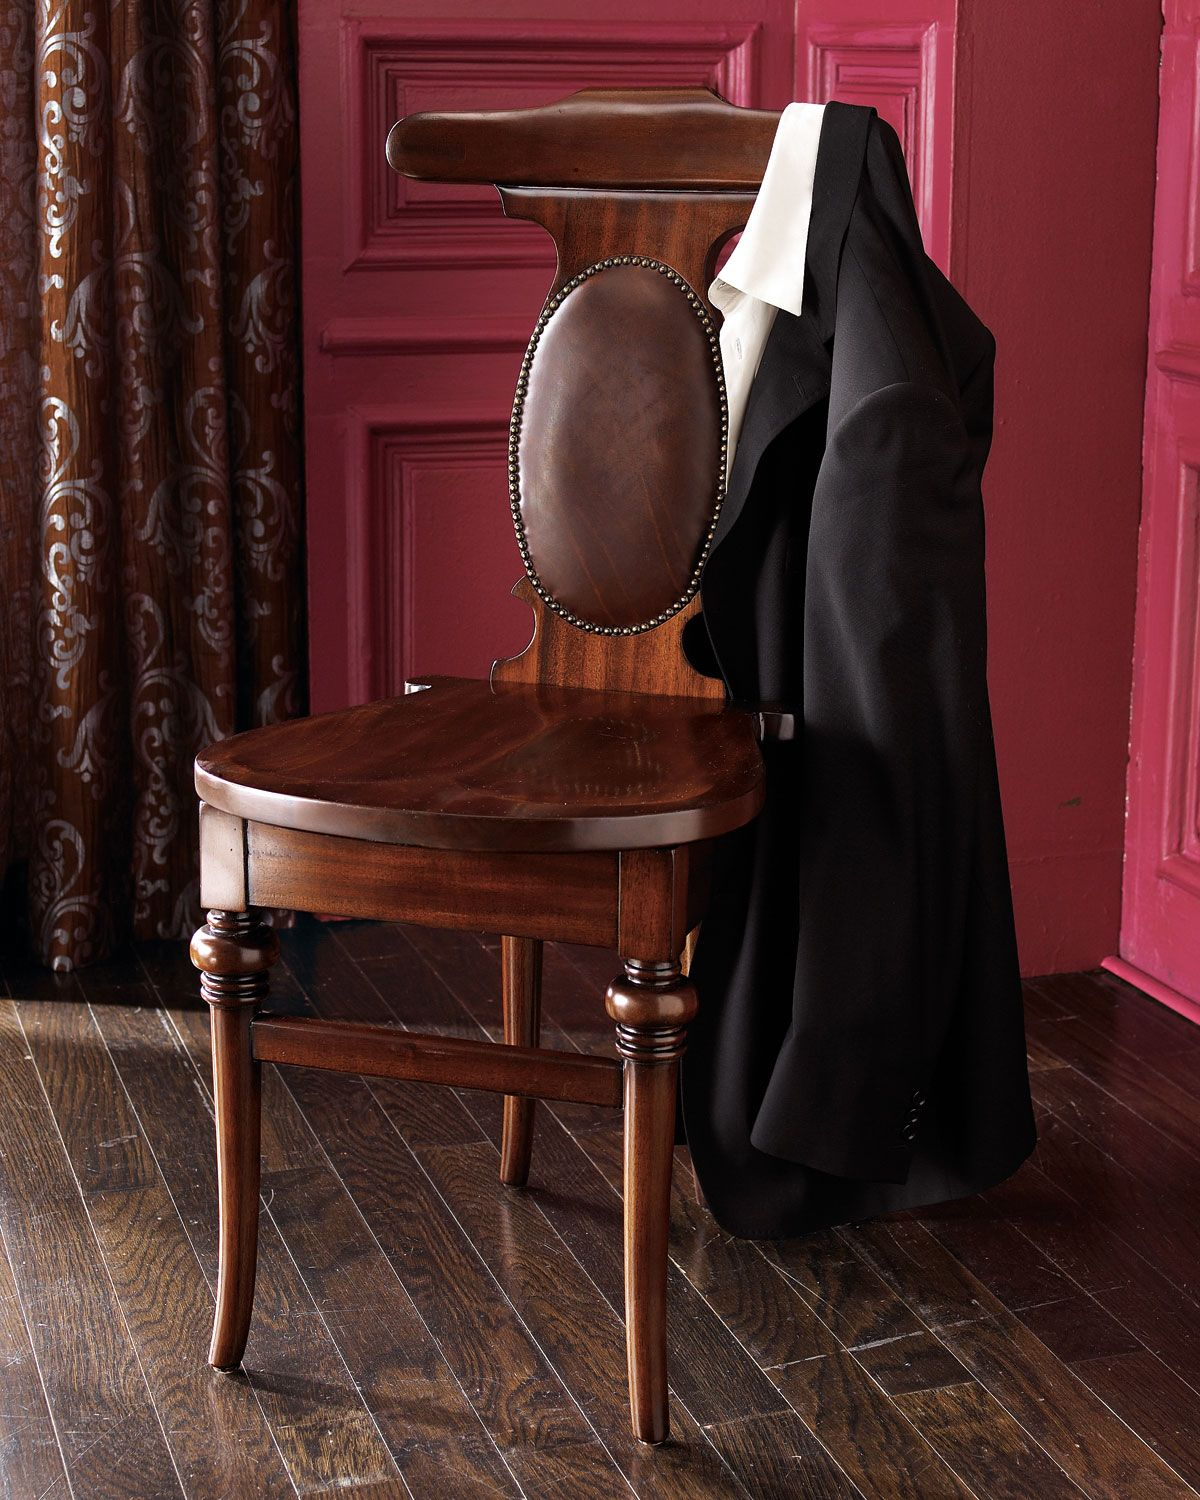 Shop Valet Chair From Maitland Smith At Horchow, Where Youu0027ll Find New  Lower Shipping On Hundreds Of Home Furnishings And Gifts.